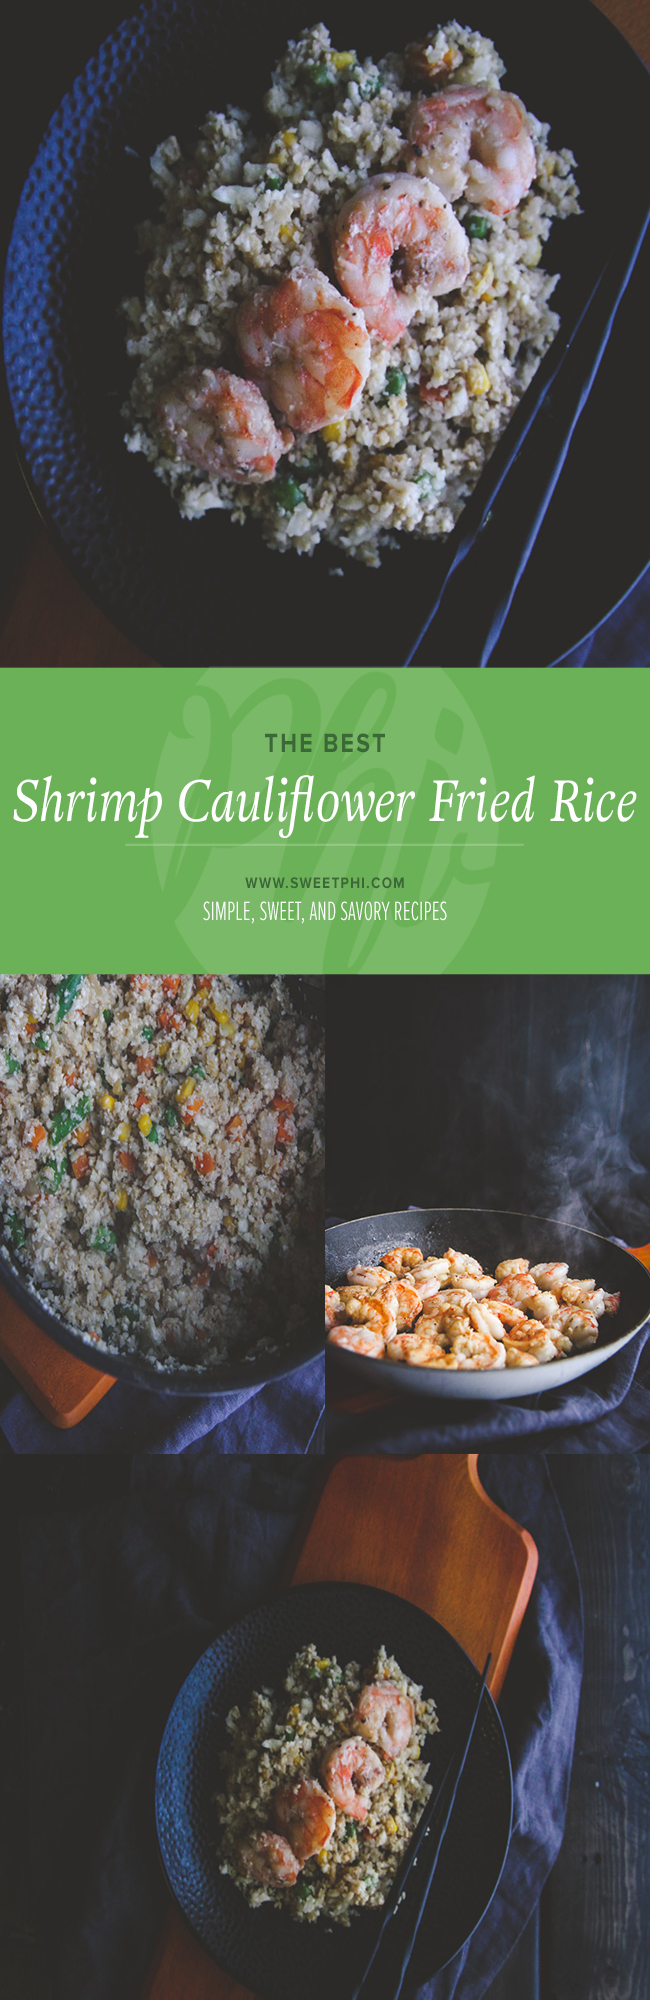 The Best Shrimp Cauliflower Fried Rice You Can Make